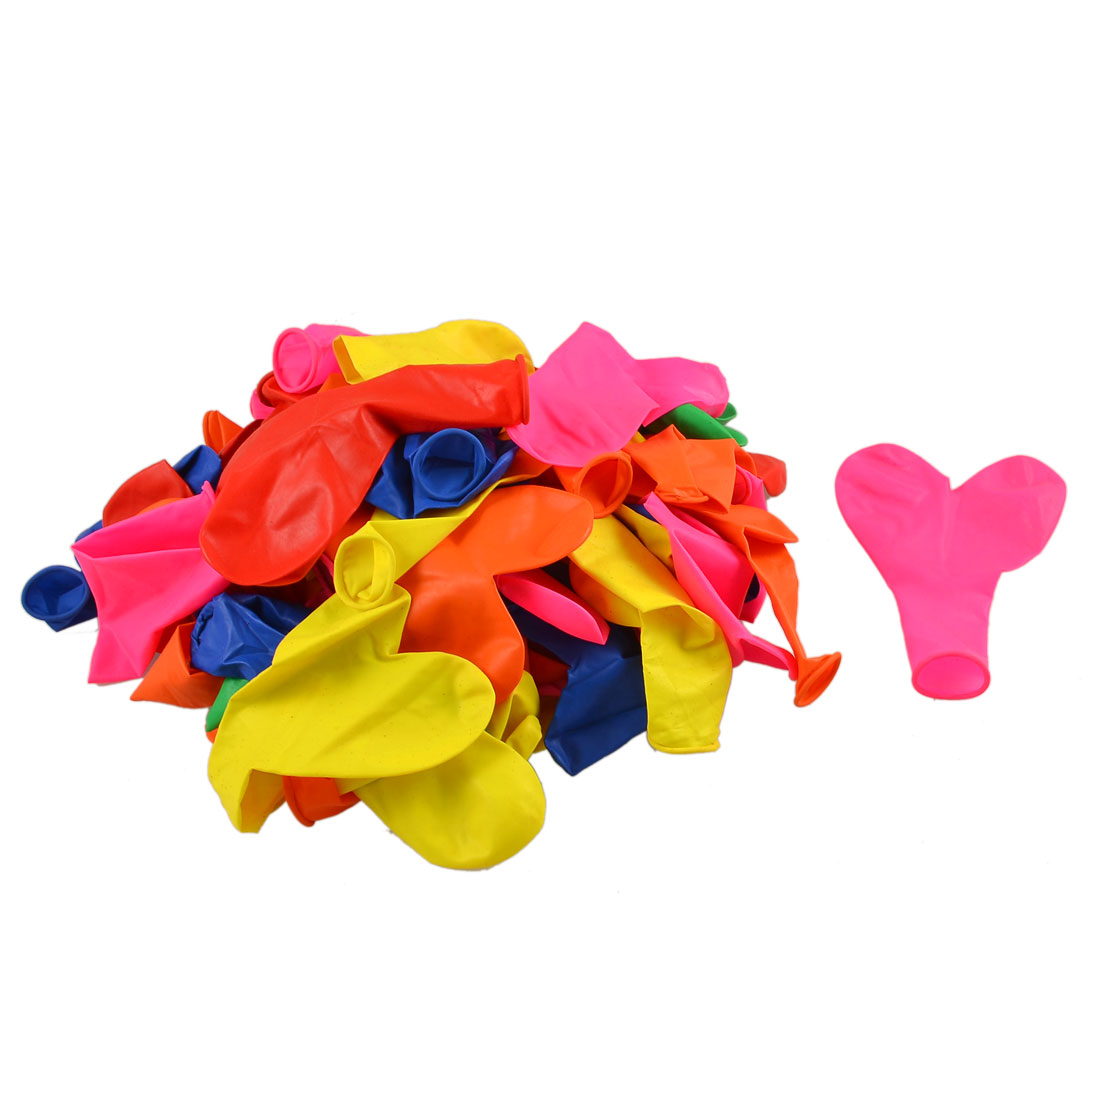 Festival Ceremony Parties Latex Hearts Balloons Ornament Assorted Color 80pcs